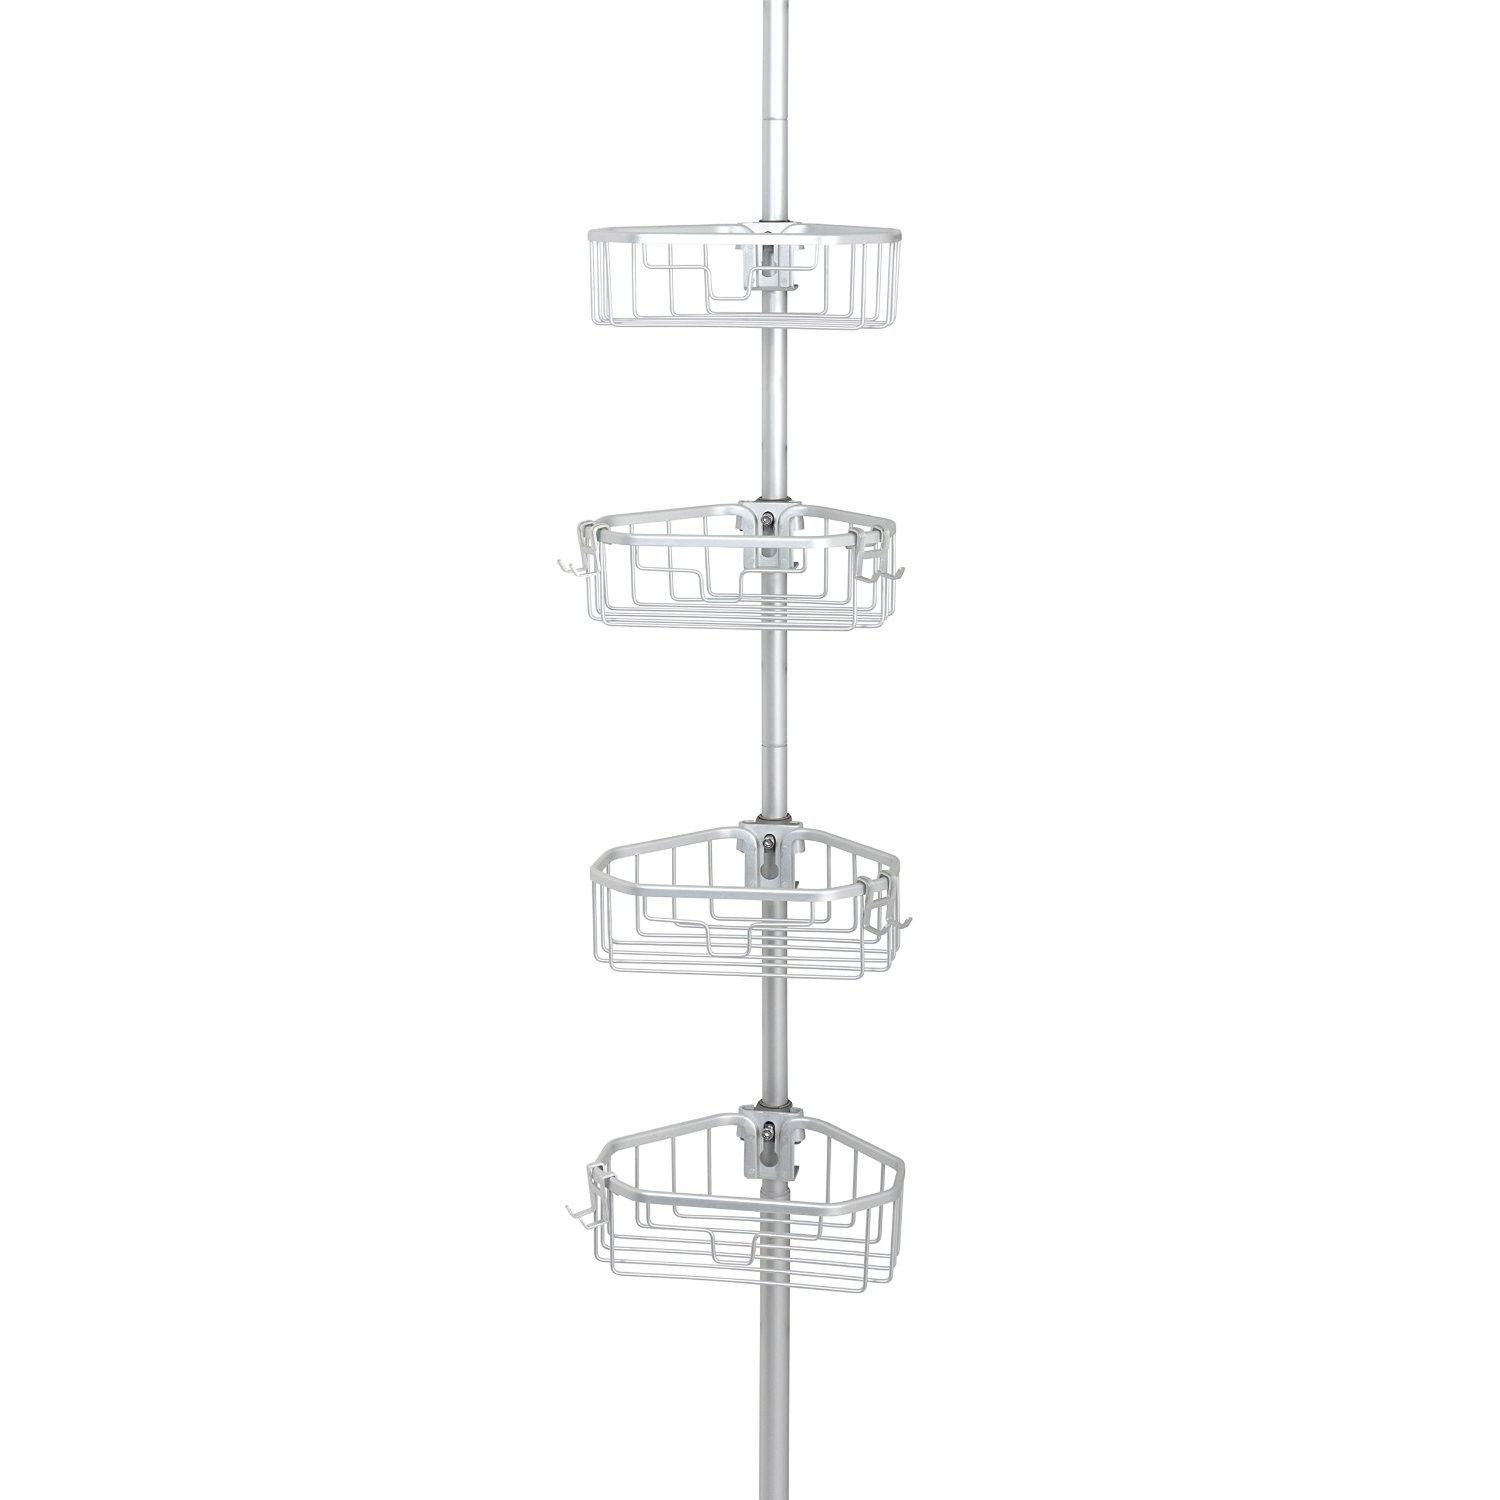 Shower Pole Caddy Rust Proof | Bathroom Utensils | Pinterest | Rust ...